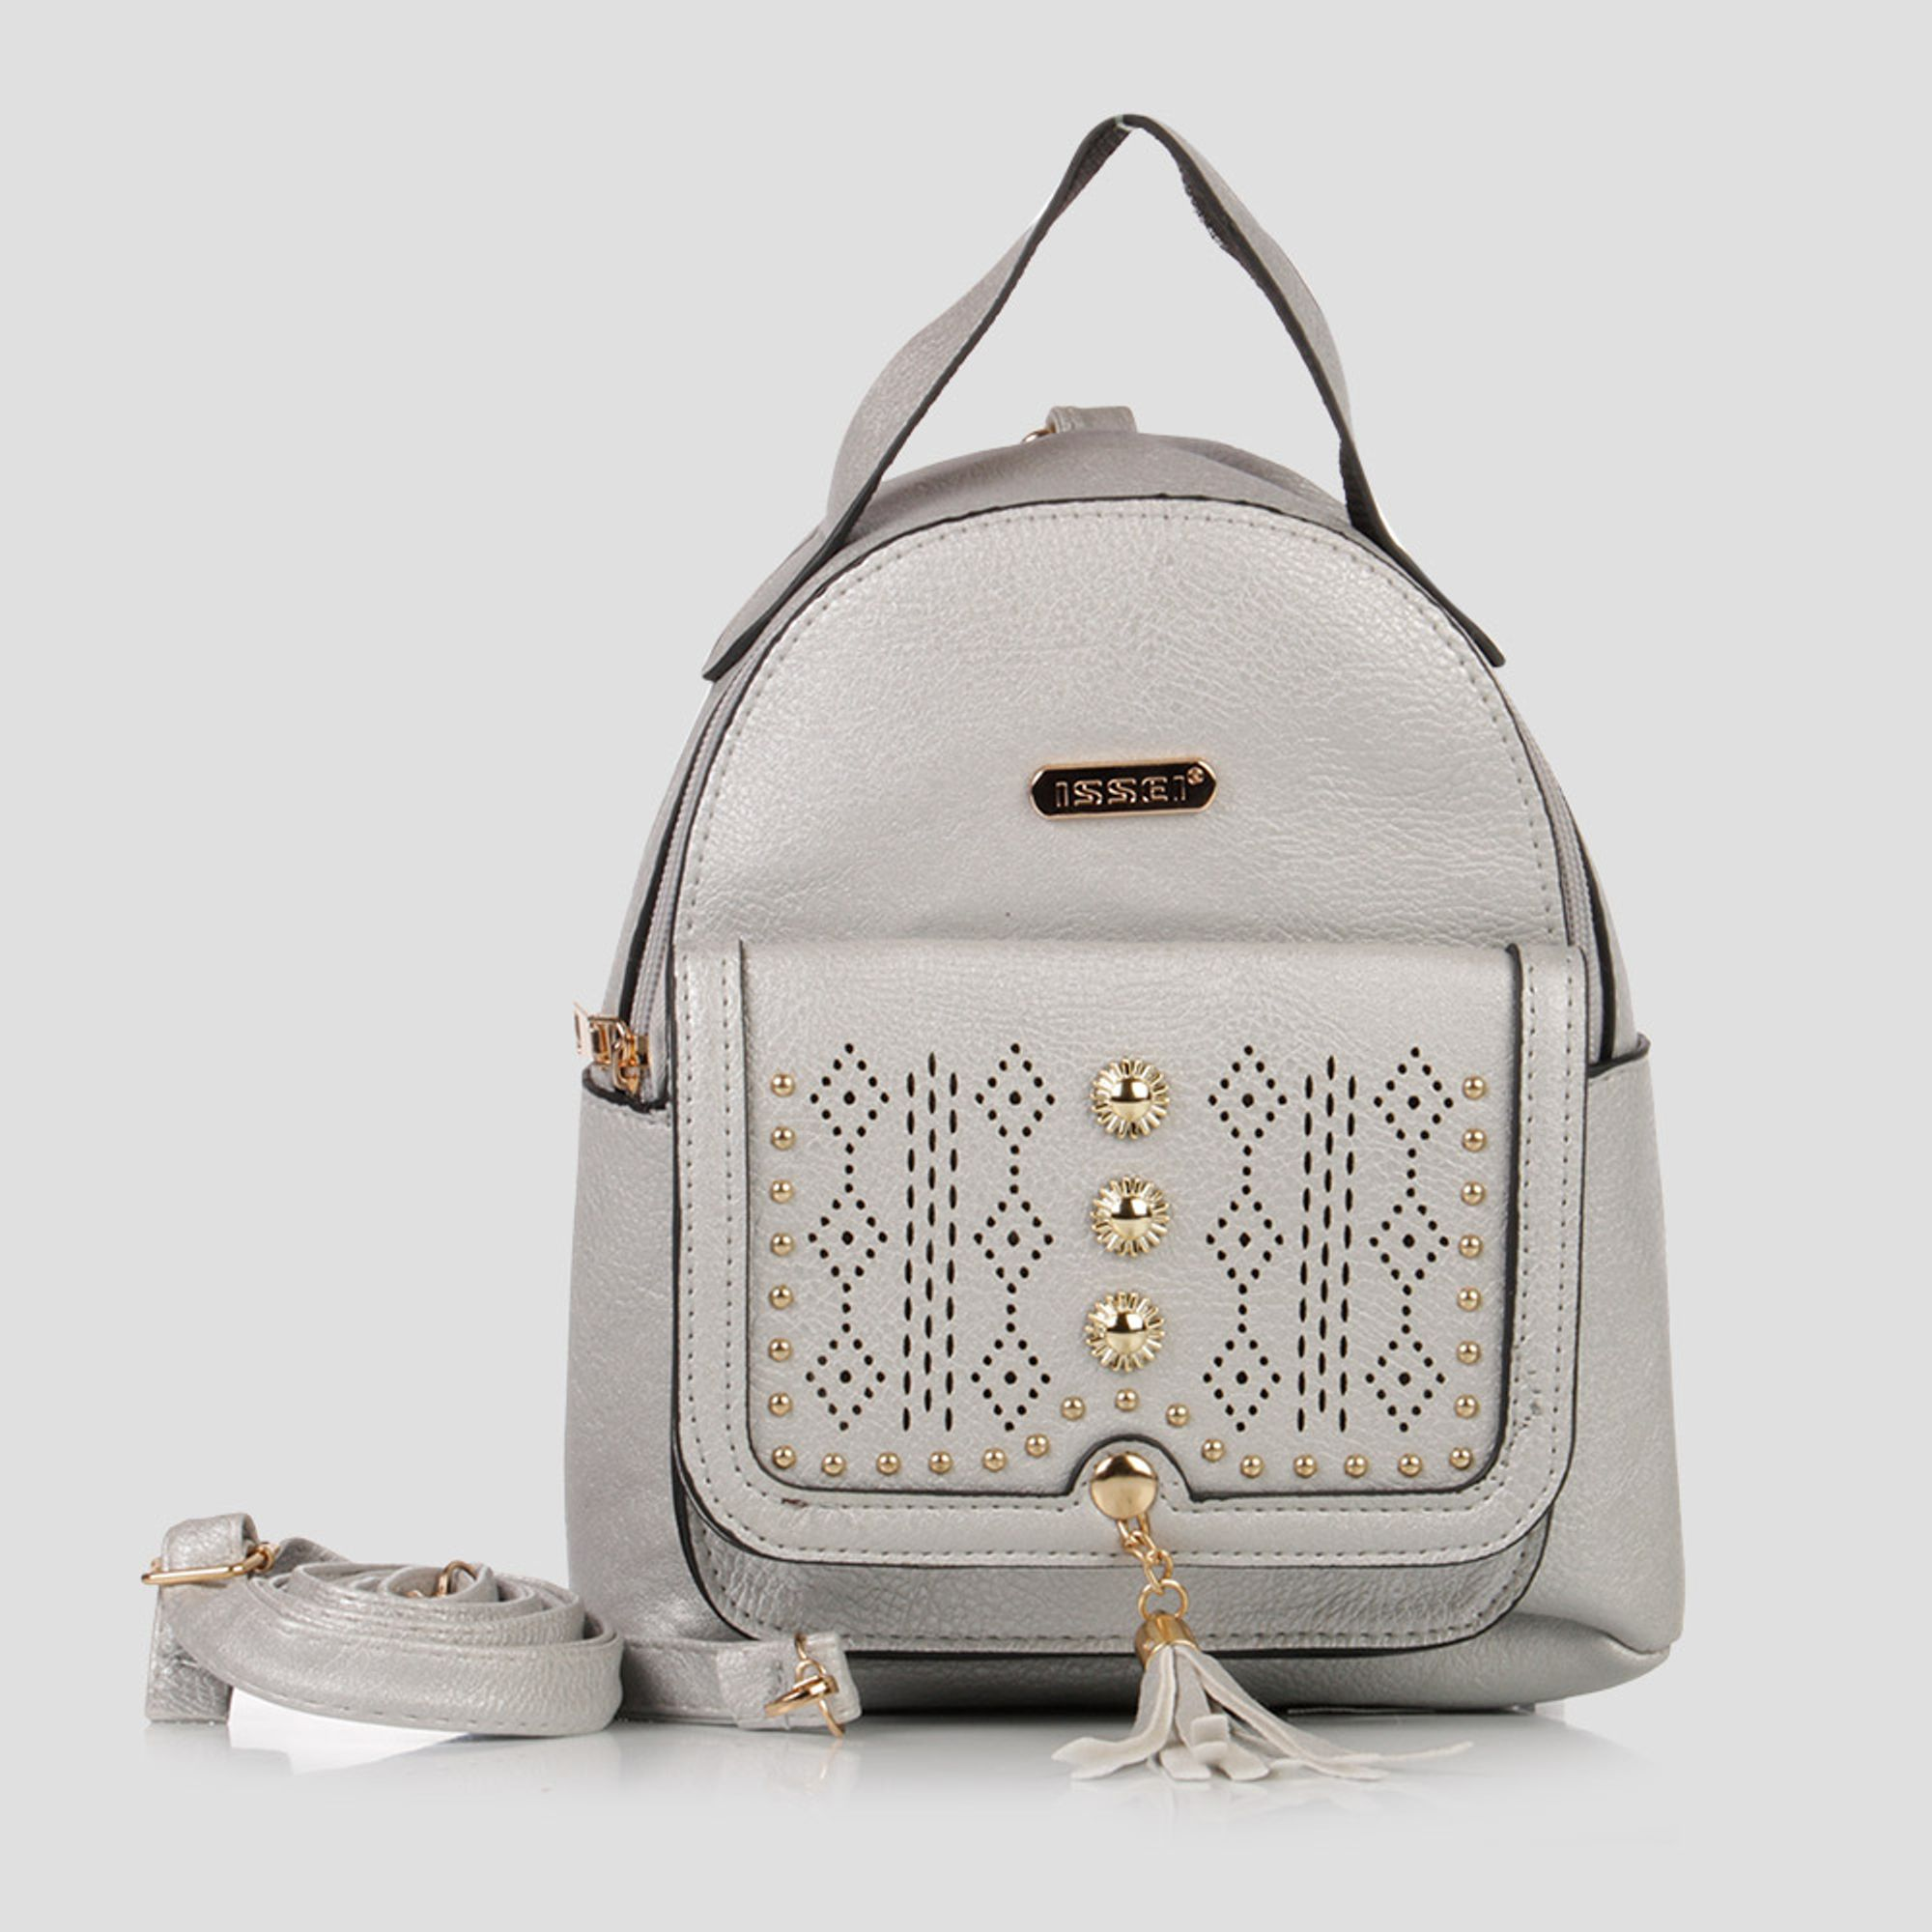 MORRAL-ISSEI-MUJER-734-PLATA